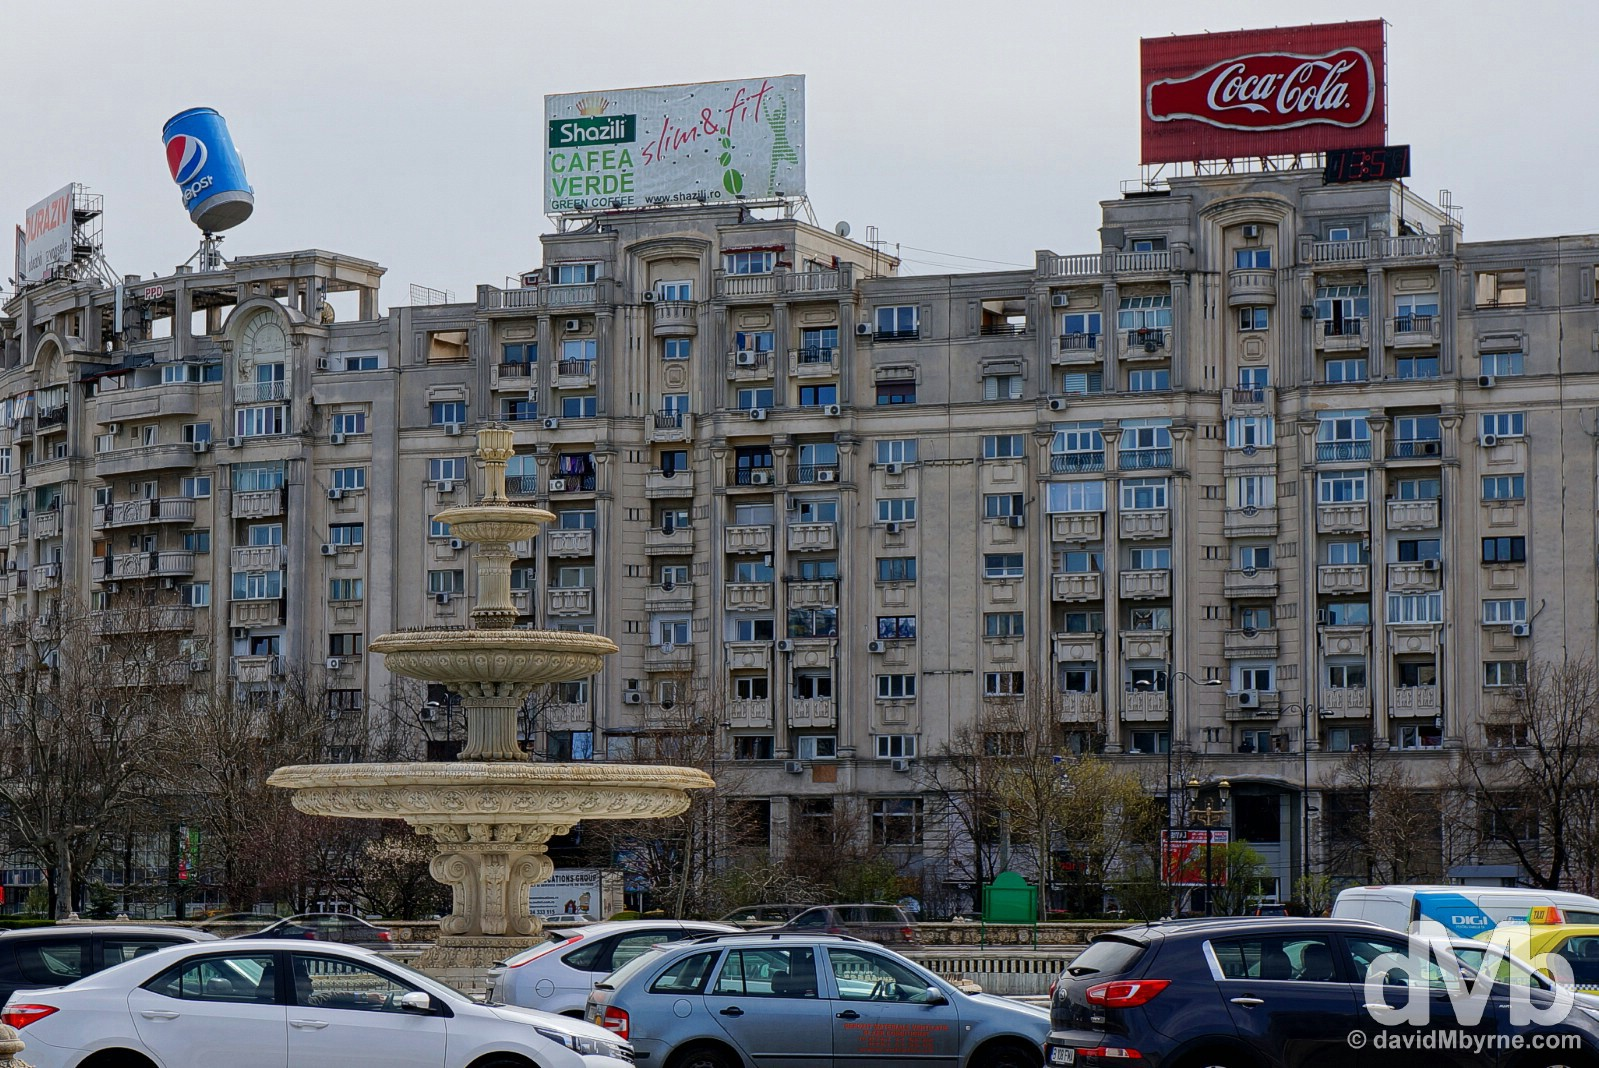 Piata Unirii, Bucharest, Romania. April 1, 2015.